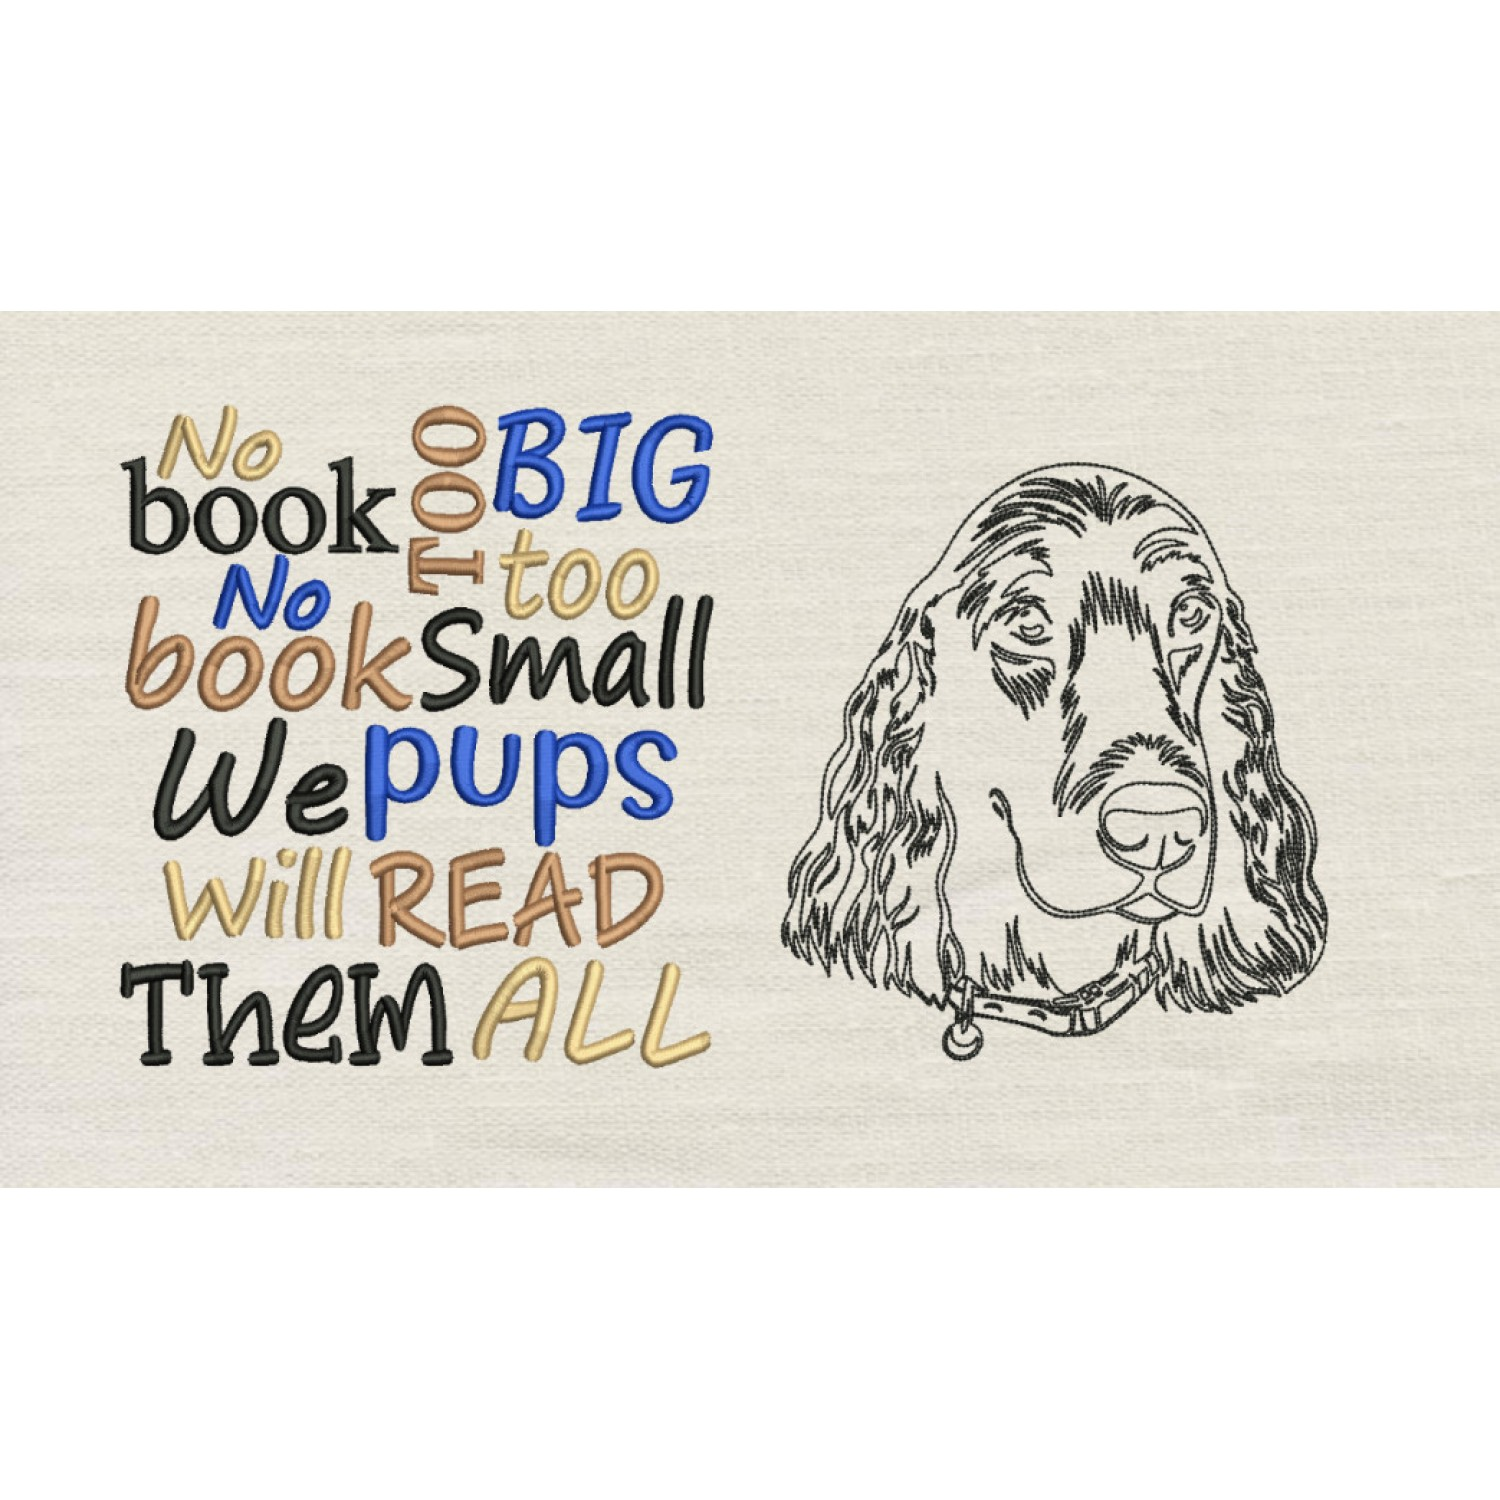 Dog line with no book designs embroidery